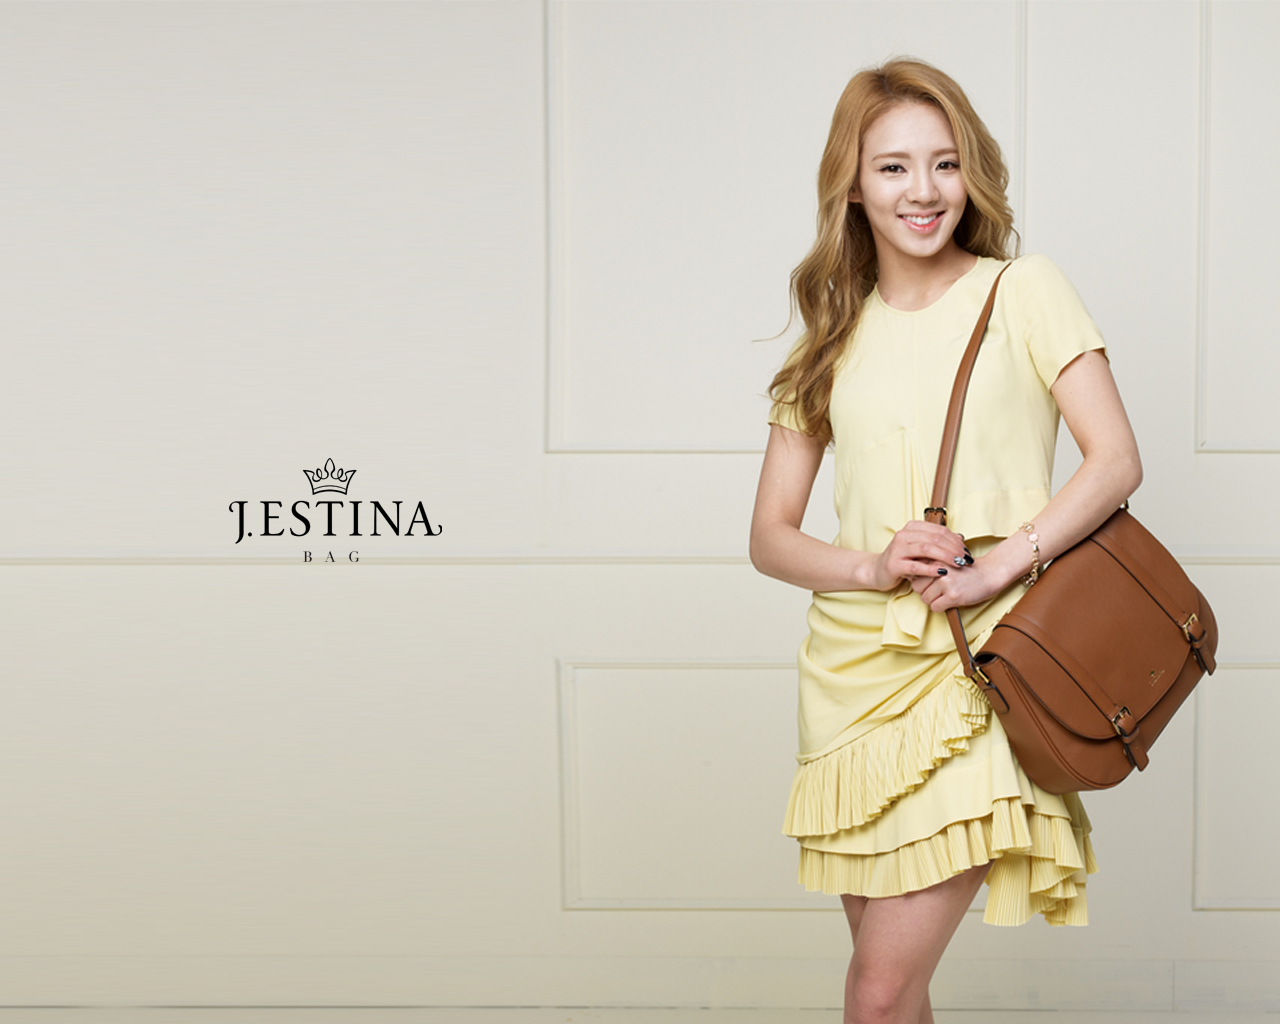 Girls' Generation Hyoyeon J.Estina